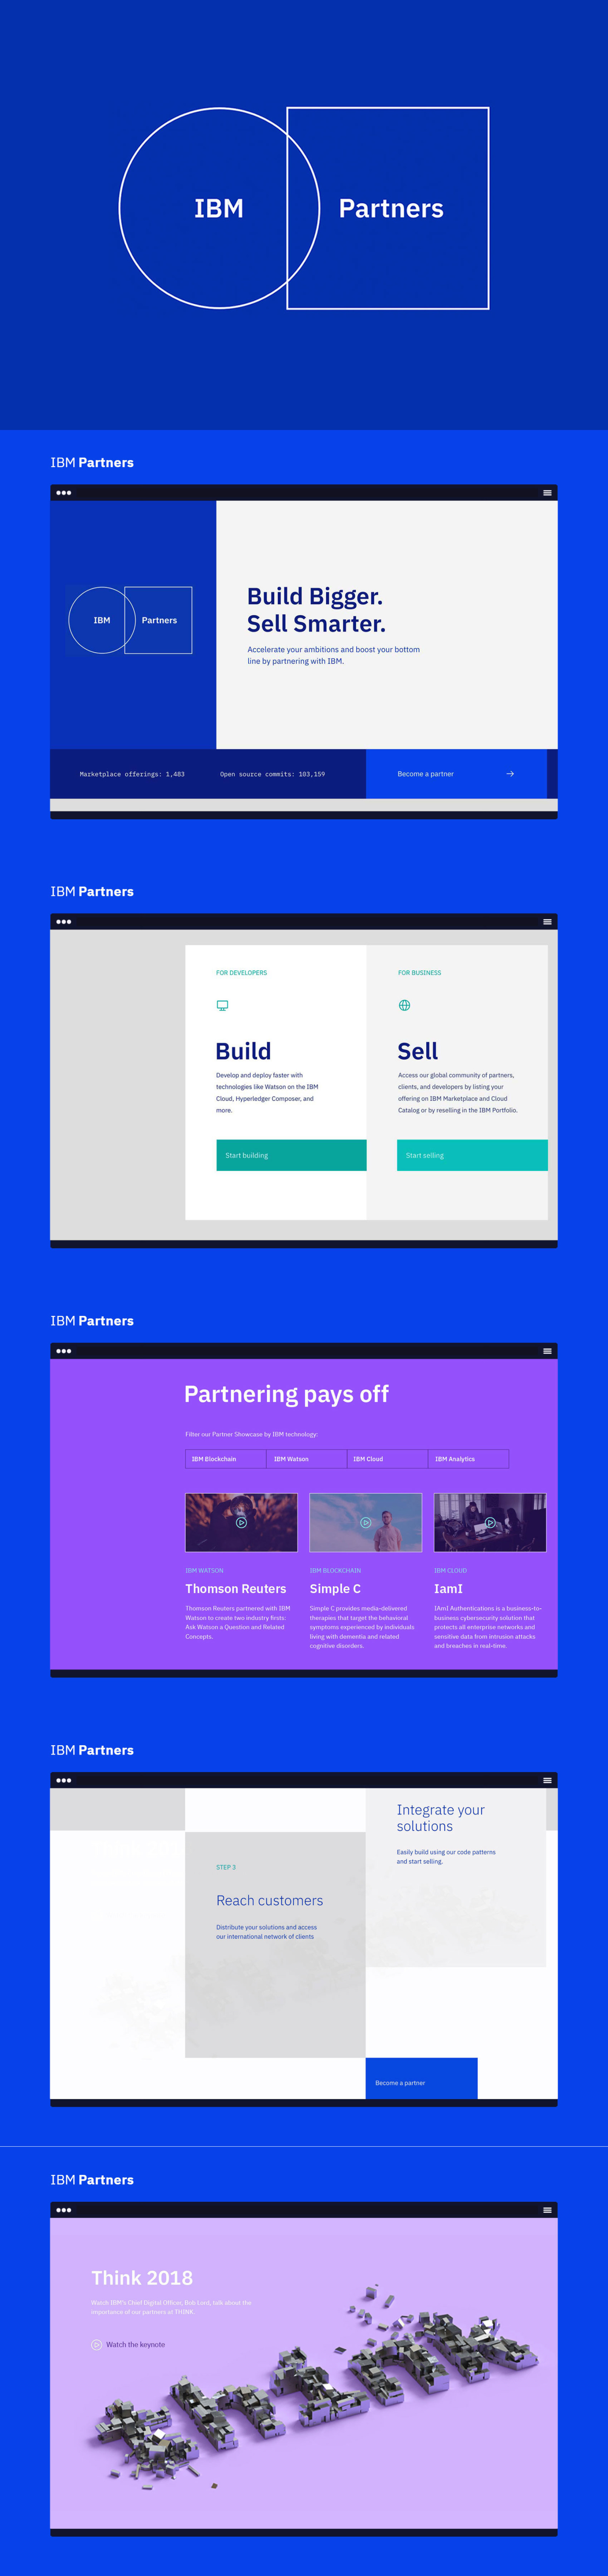 IBM Partners - UI Design and front end development